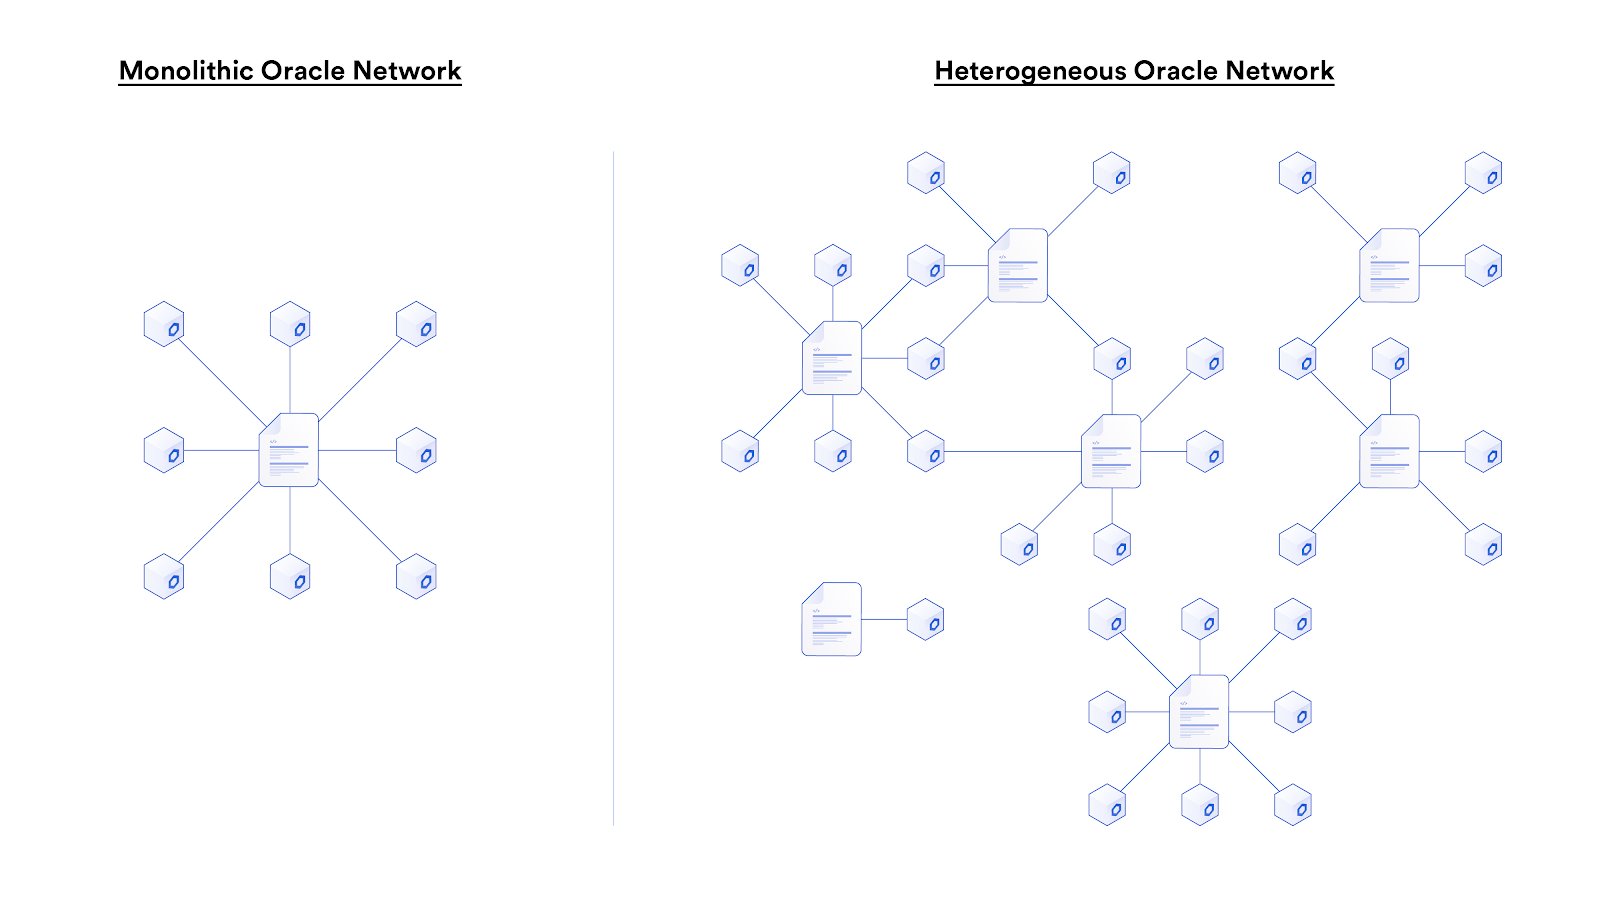 Chainlink as a heterogeneous oracle network